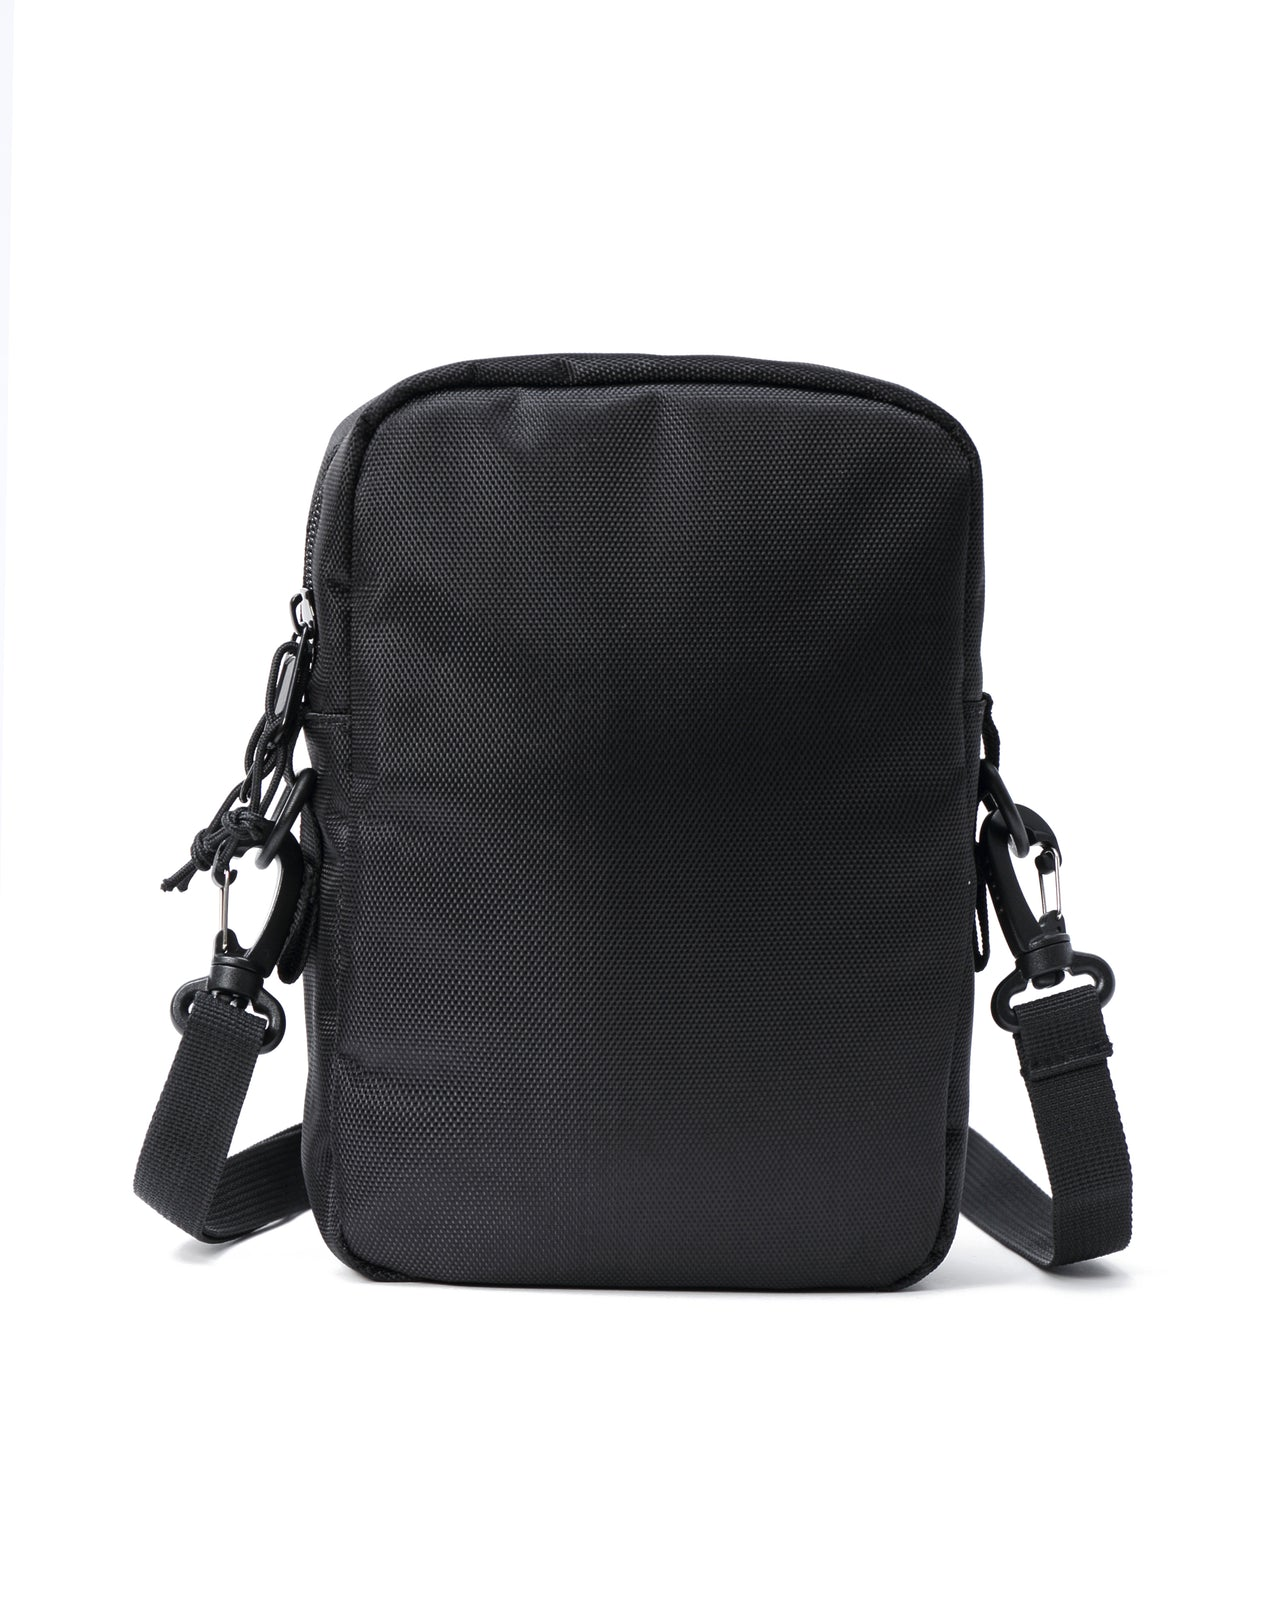 SMALL TECH SHOULDER BAG - Color: BLACK